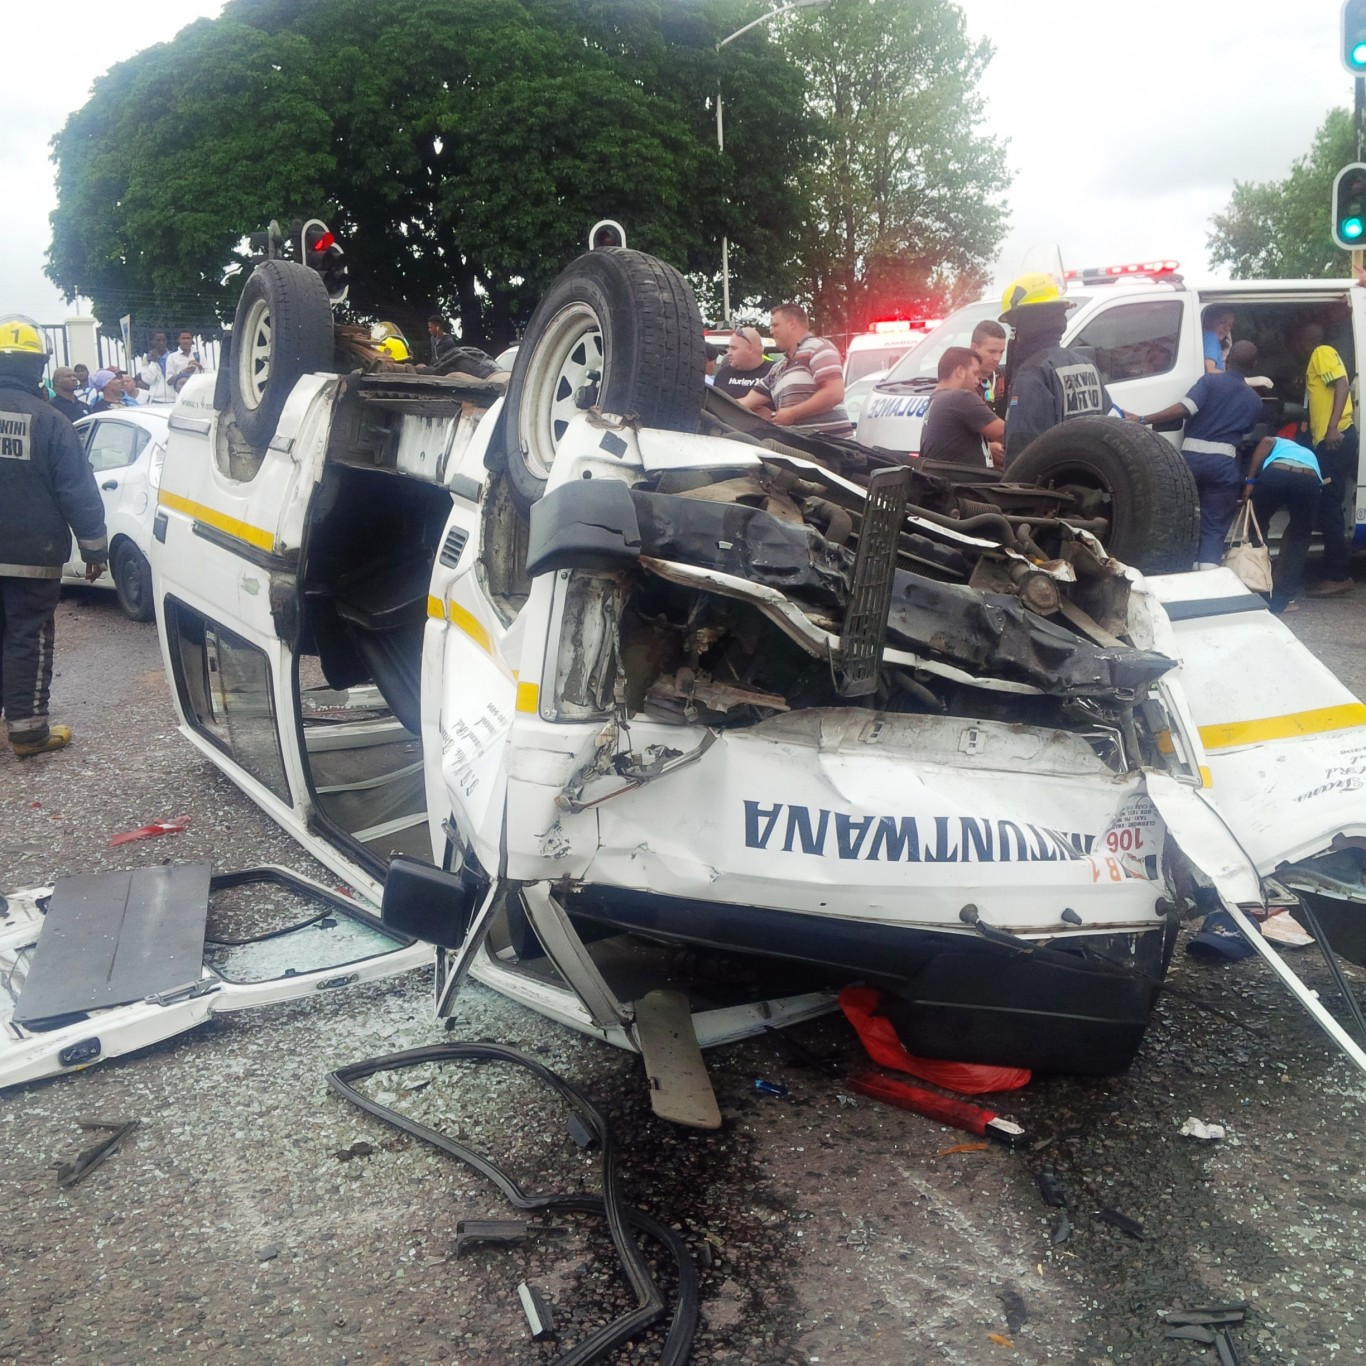 3 Taxi accidents in 2 hours leaves 33 injured in afternoon crash in Pinetown